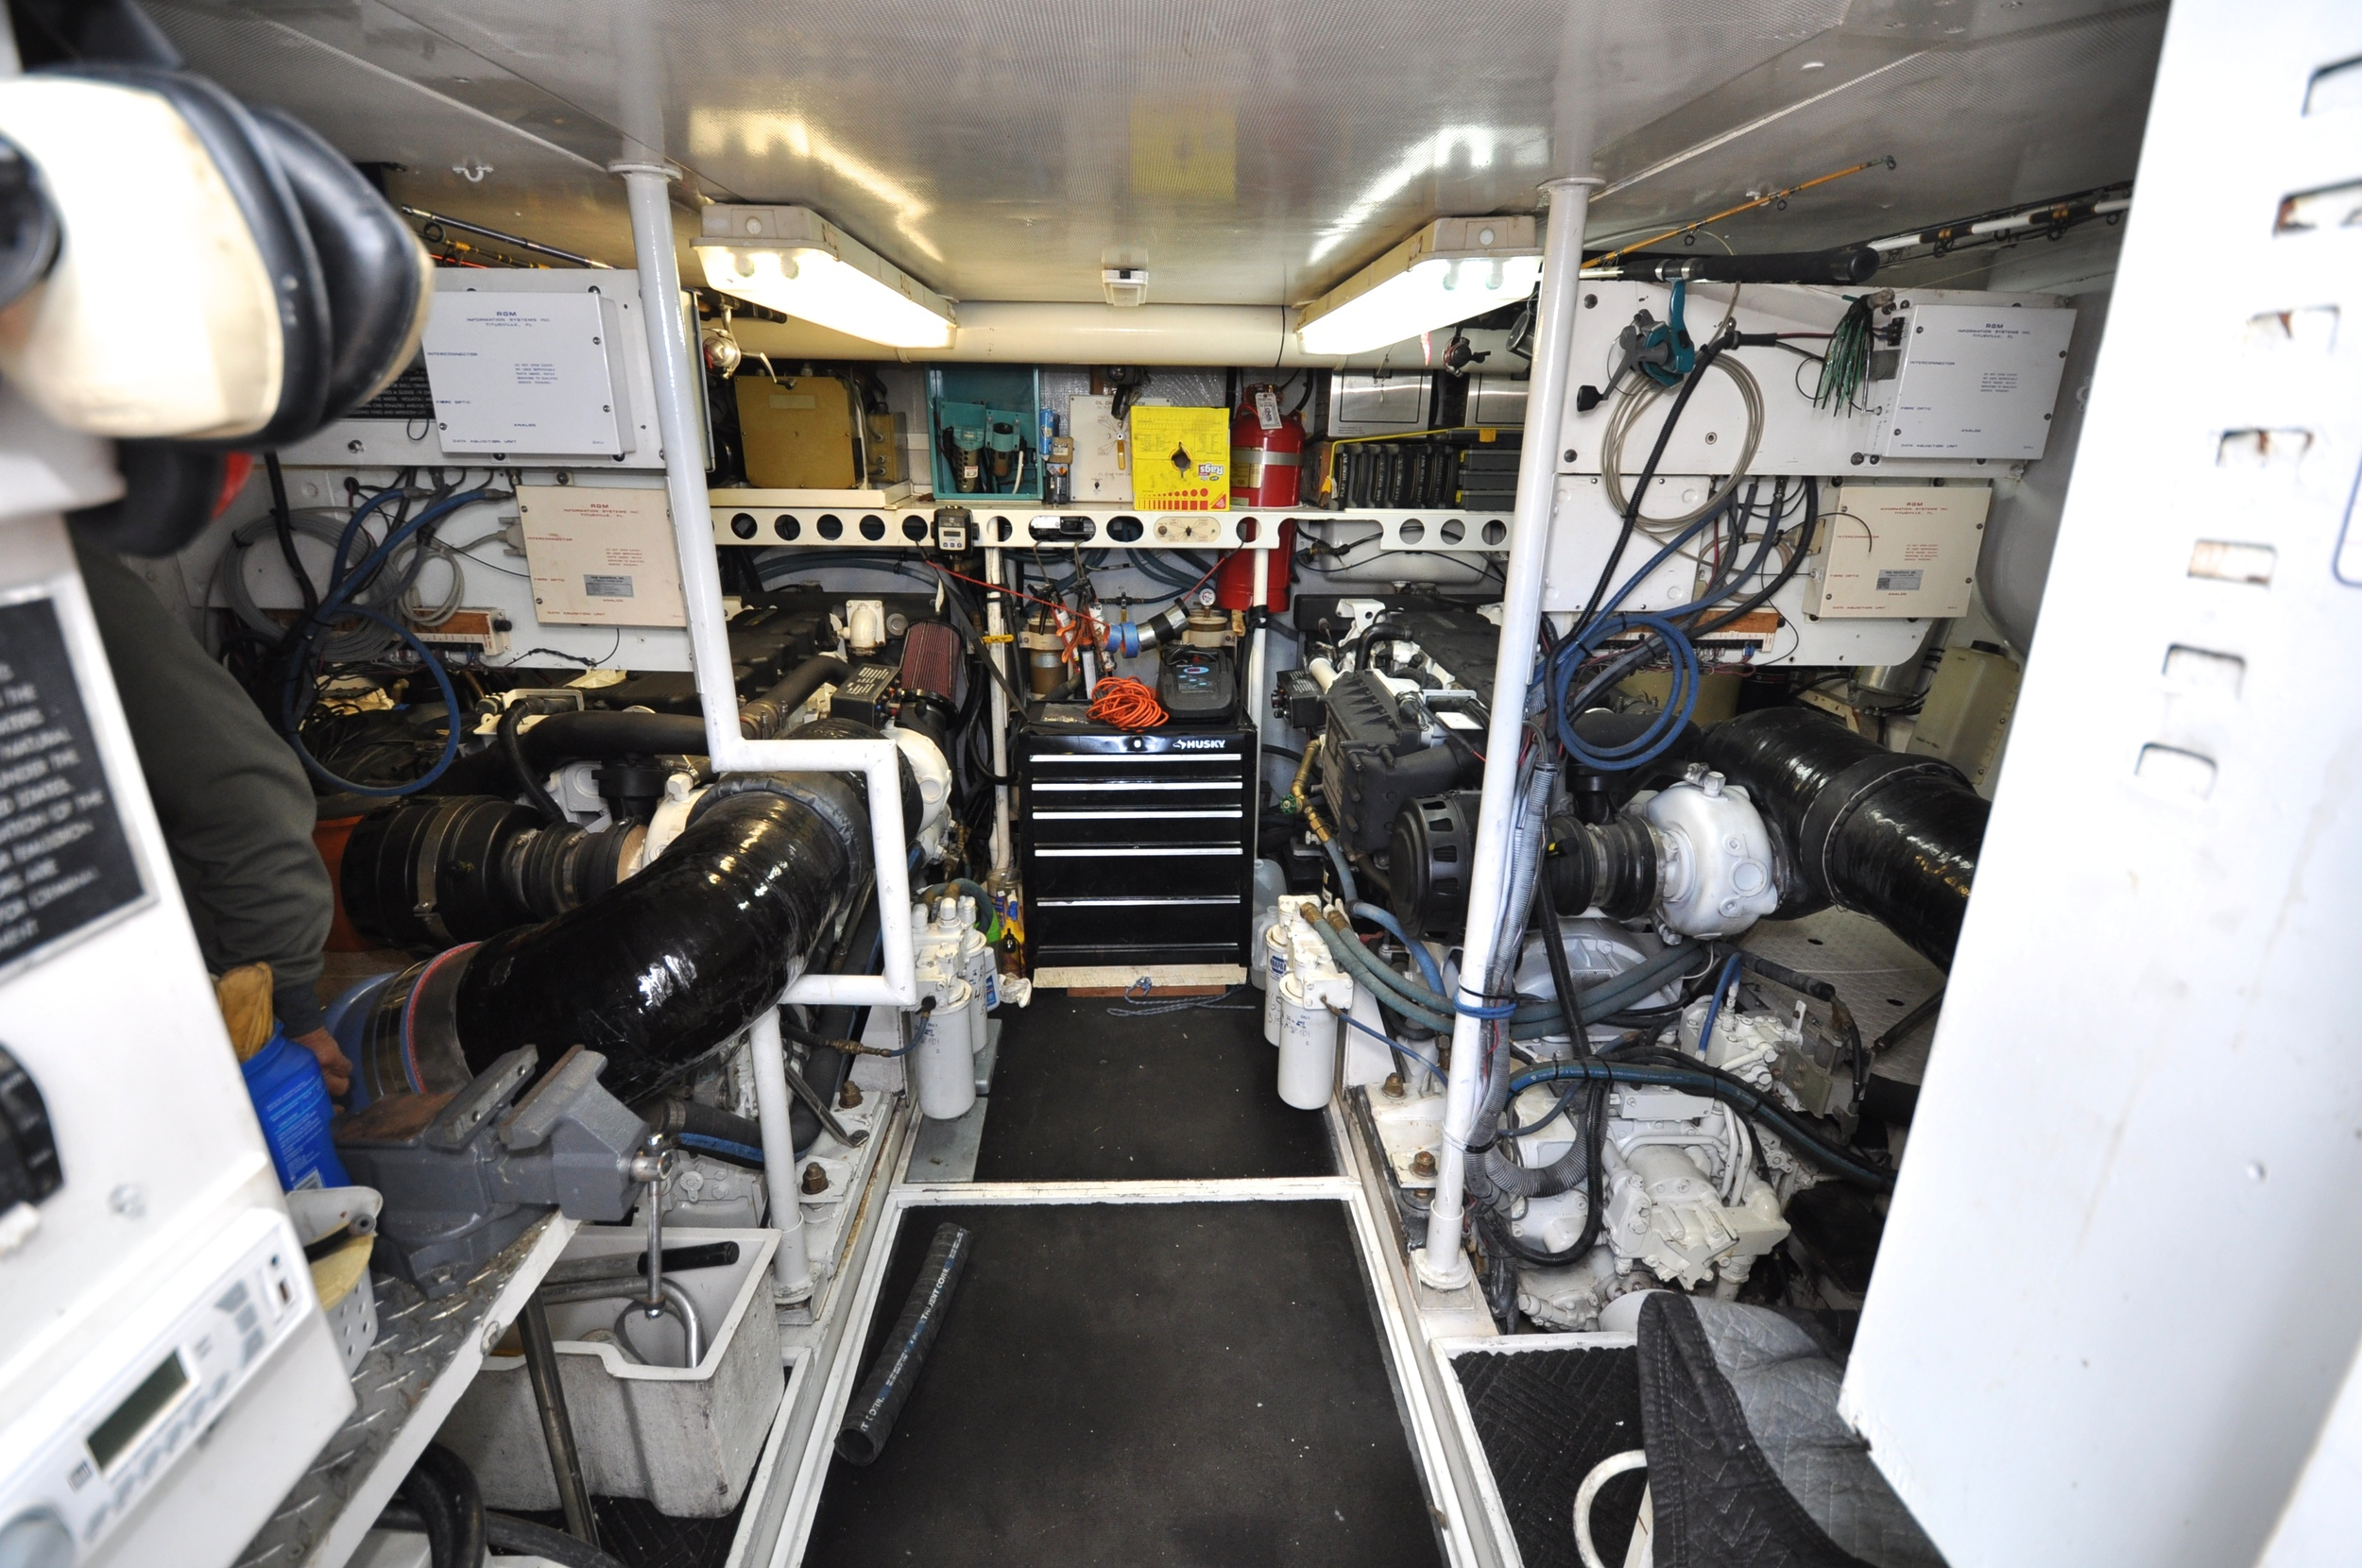 117.5 engine room overall.JPG